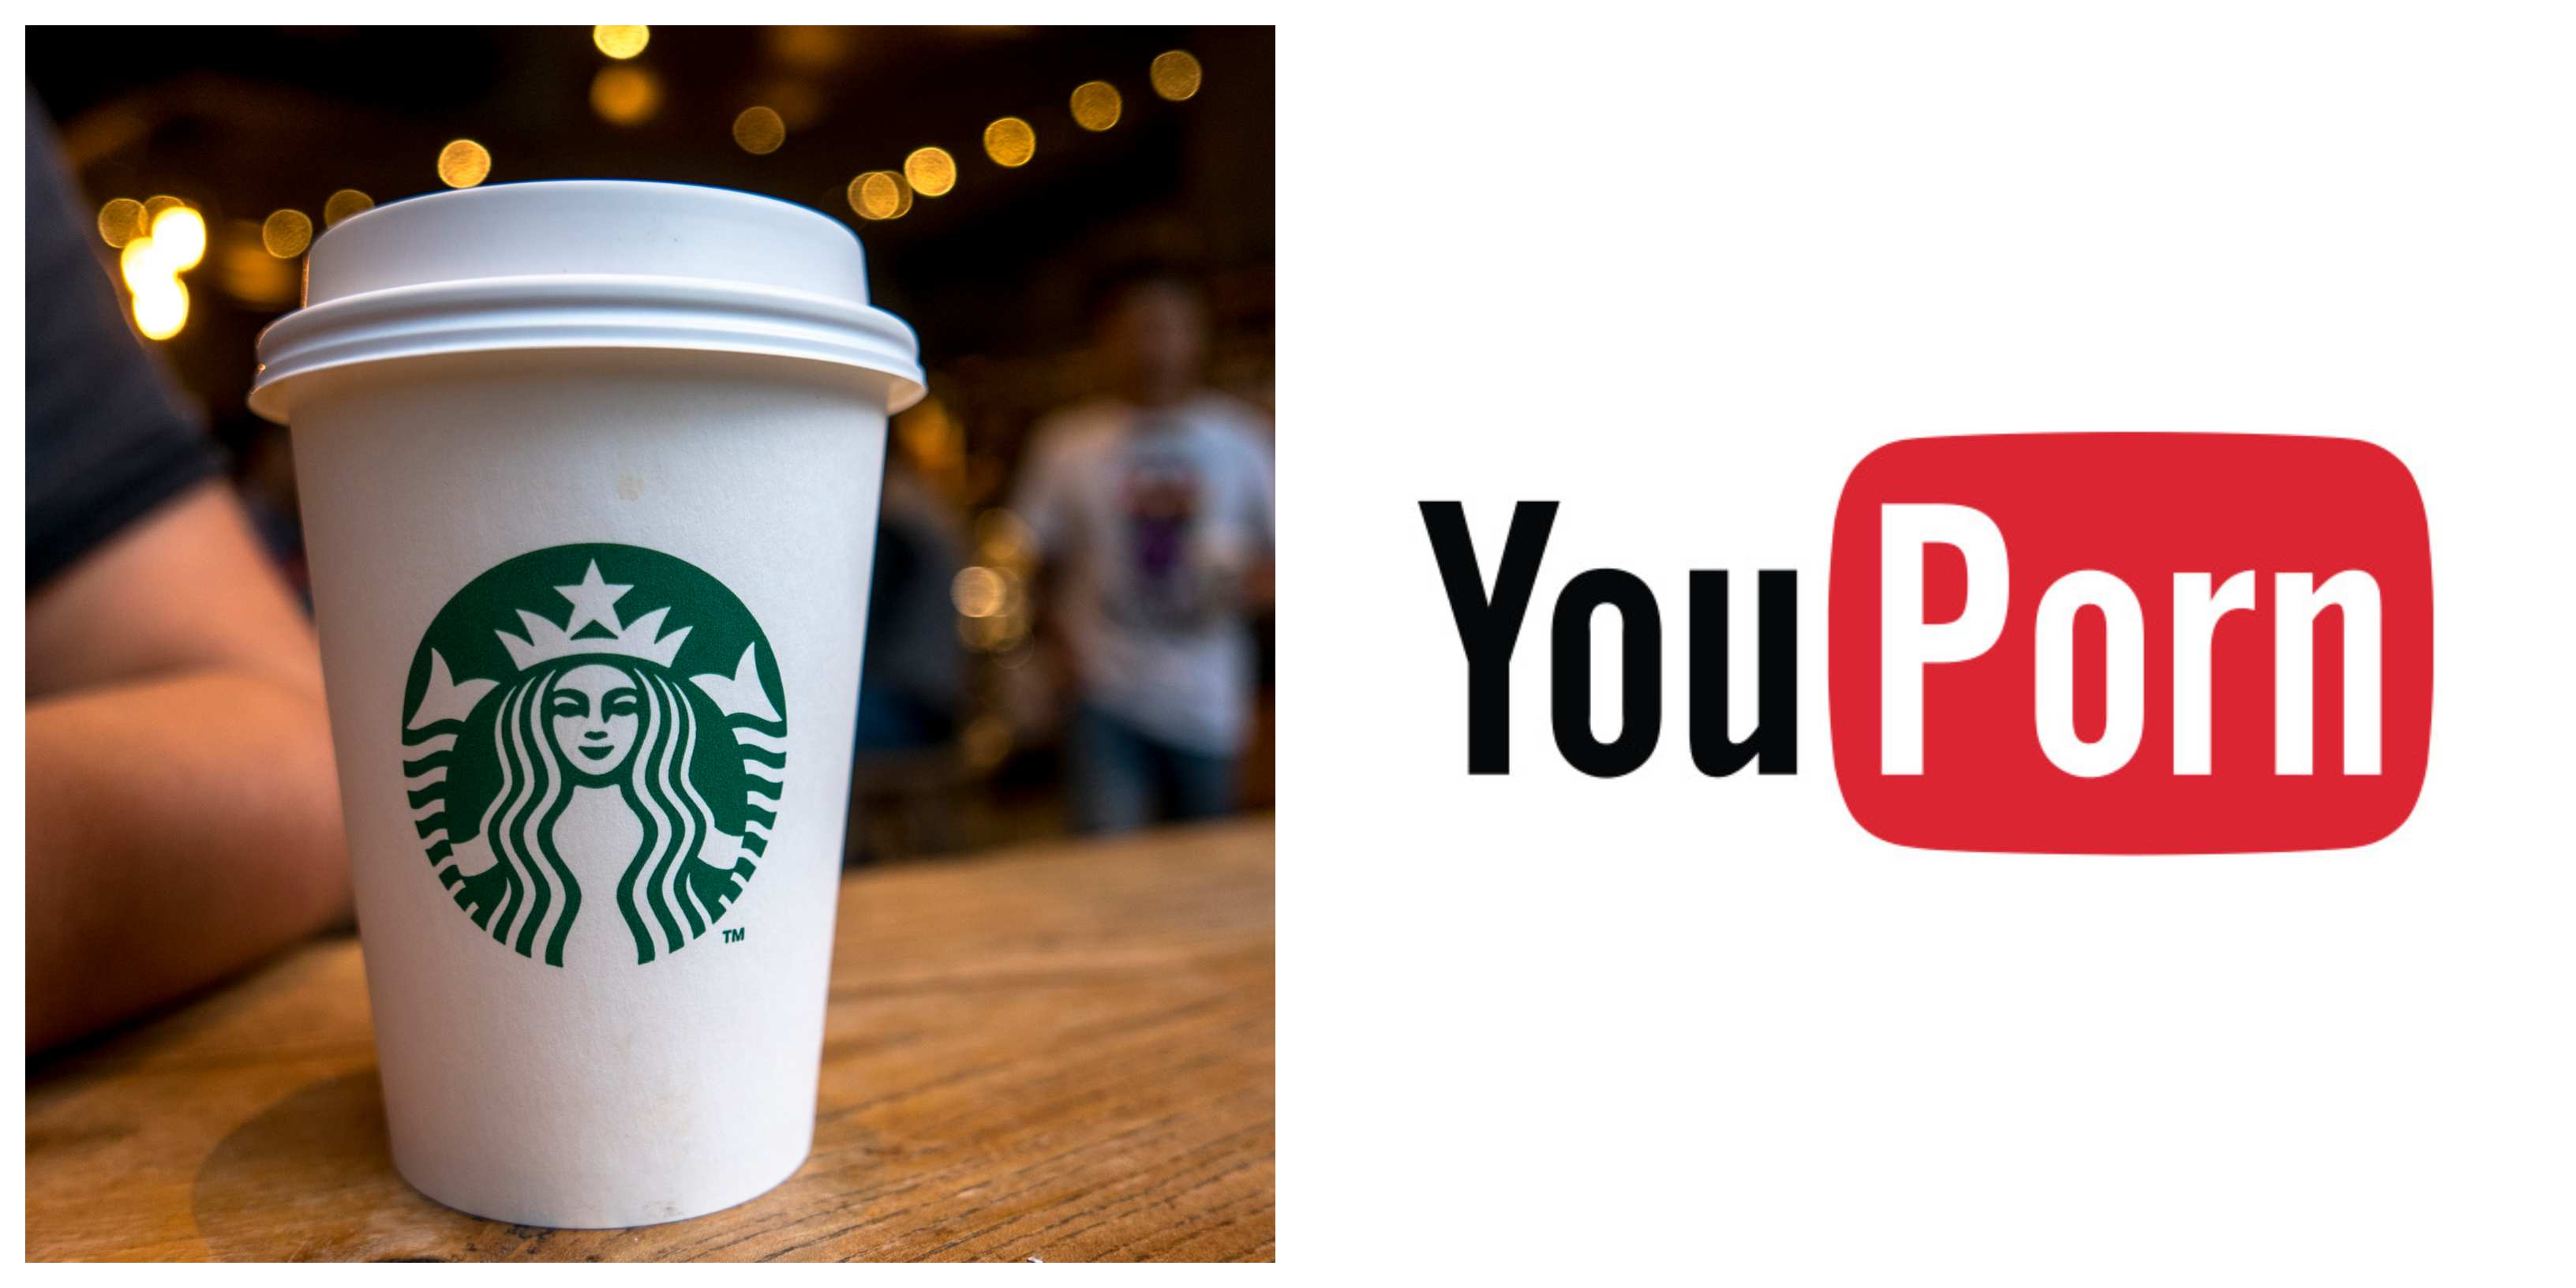 Starbucks and YouPorn